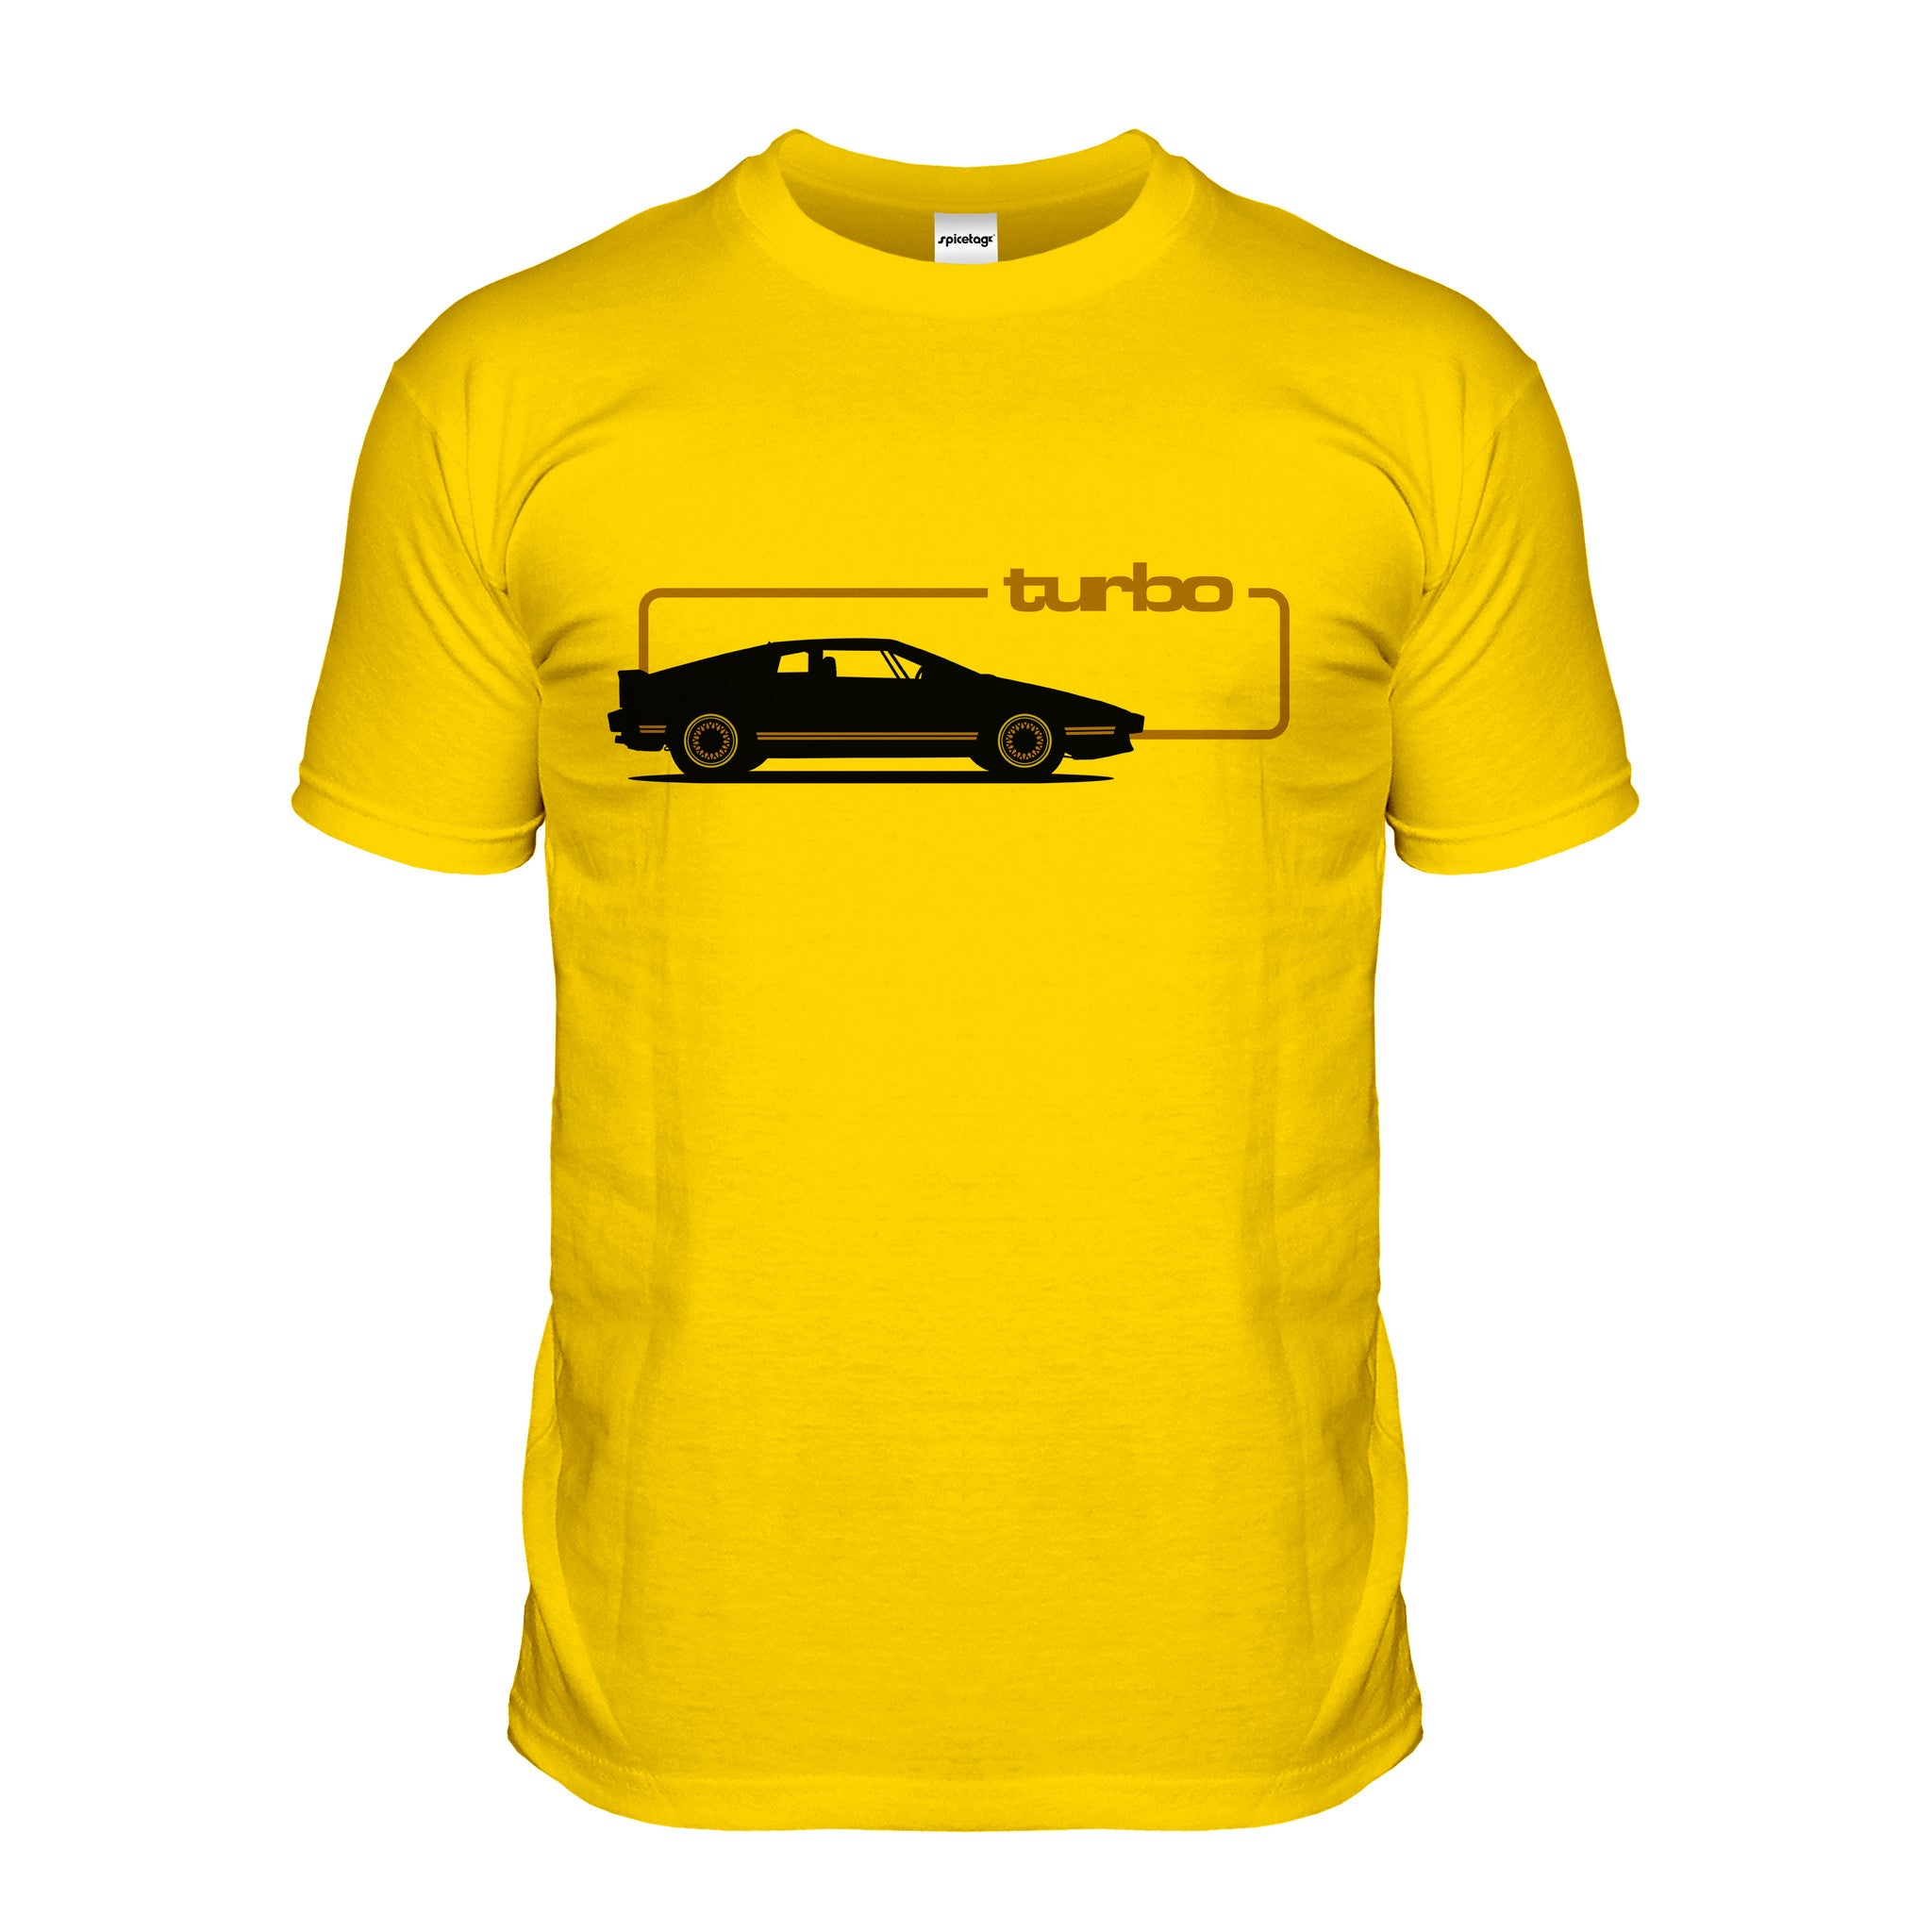 Esprit Turbo T-shirt